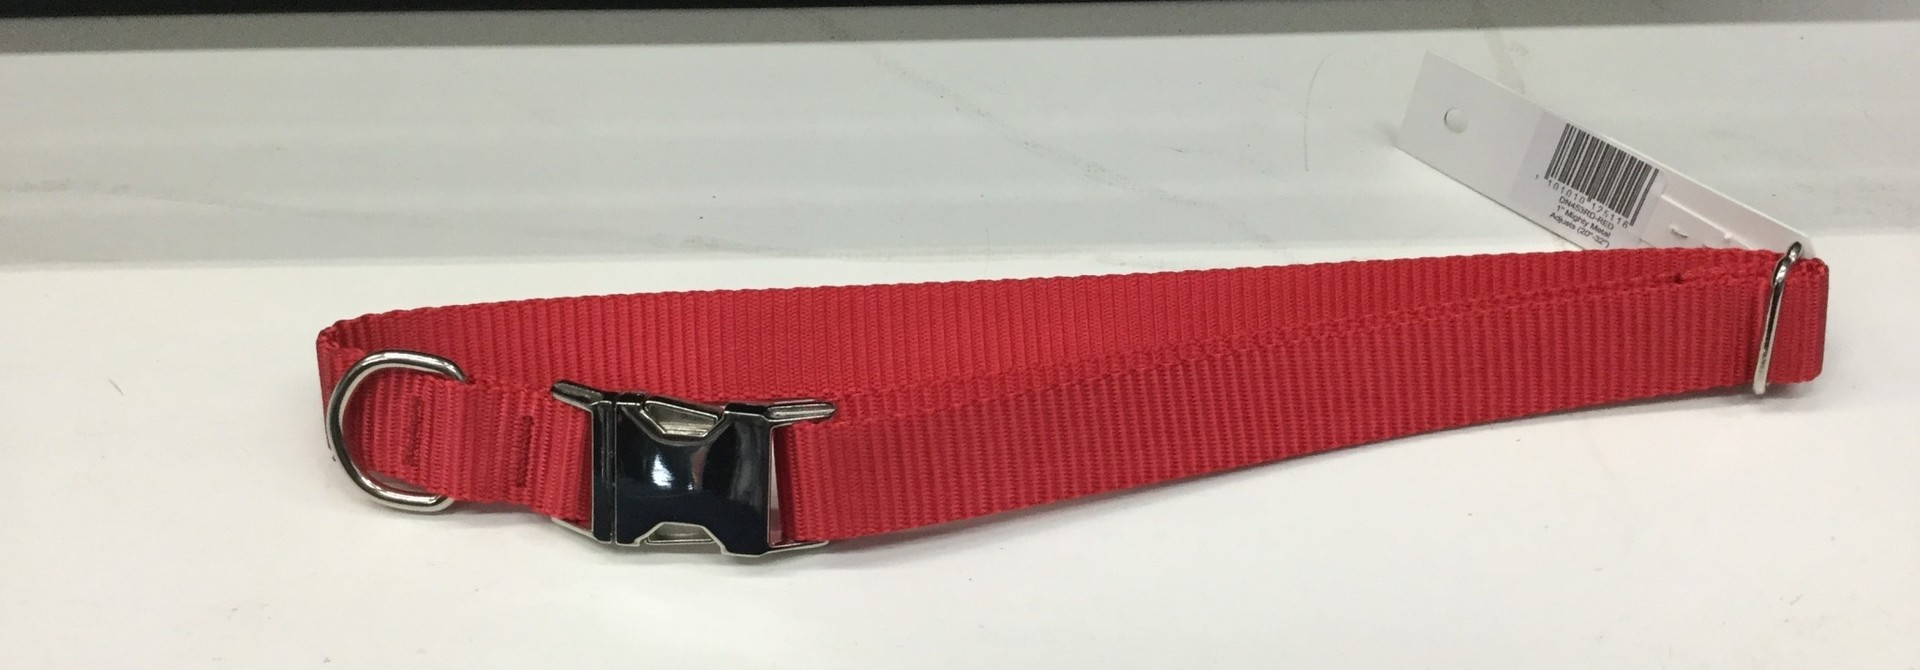 "1"" Mighty Metal Dog Collar 20-32""- Red"